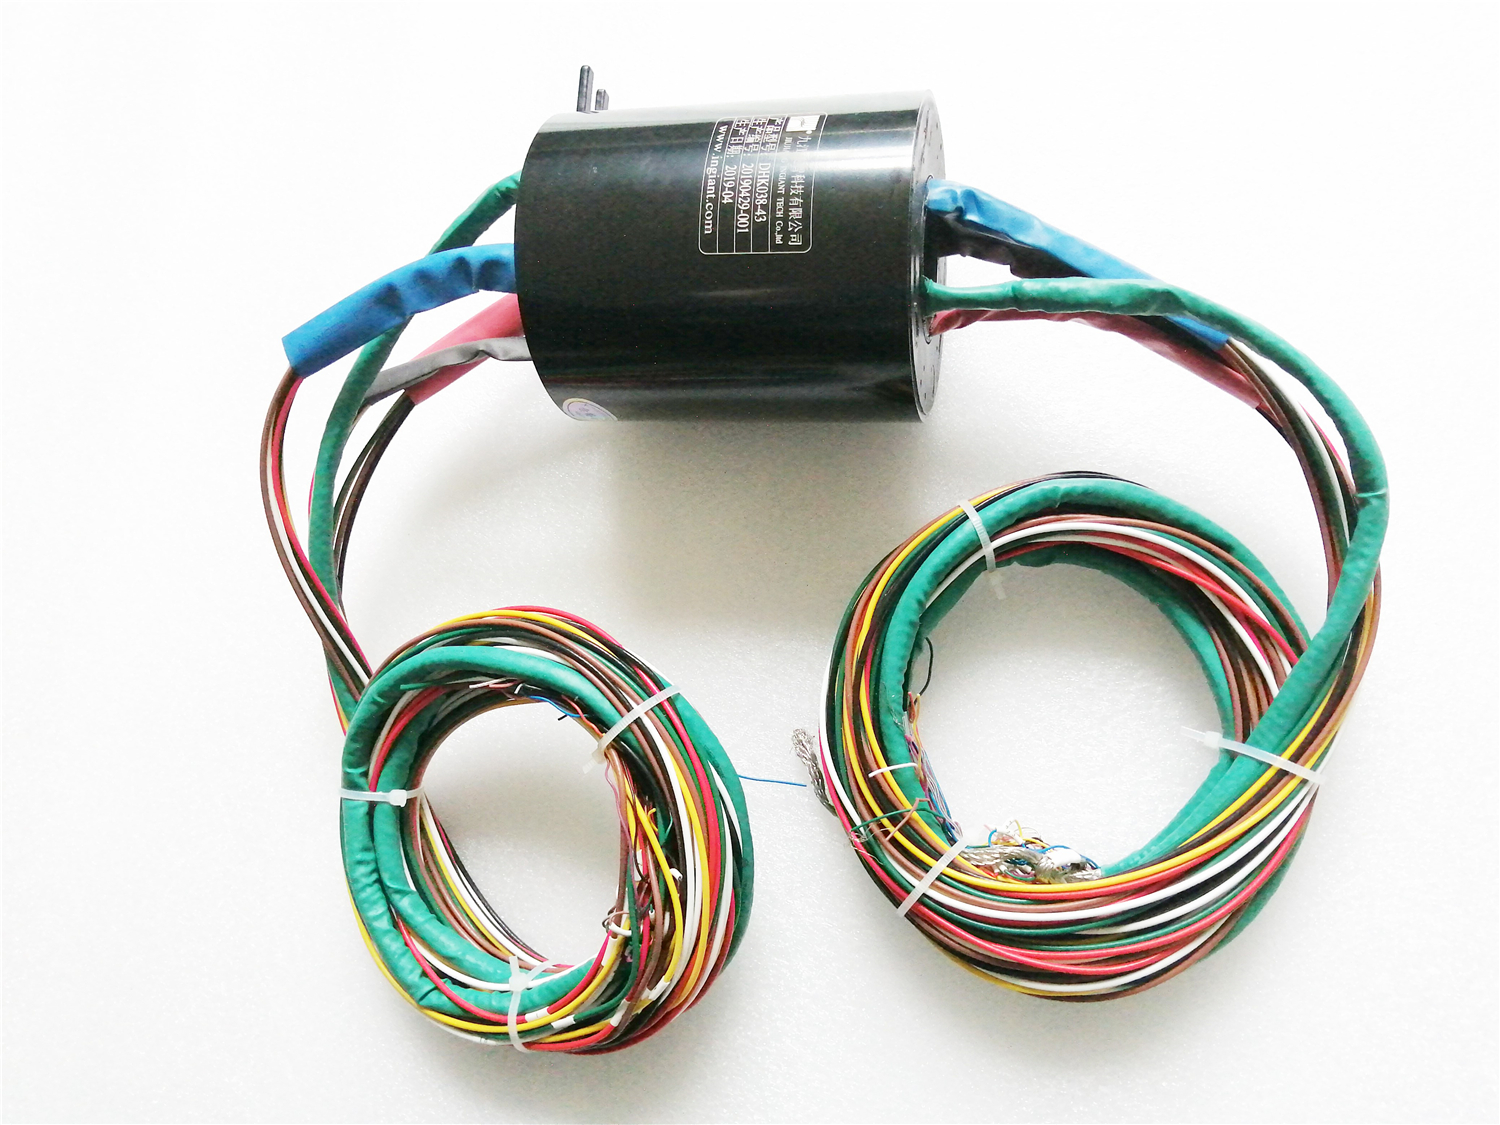 Electric slip ring DHK038-43(2.35kg)